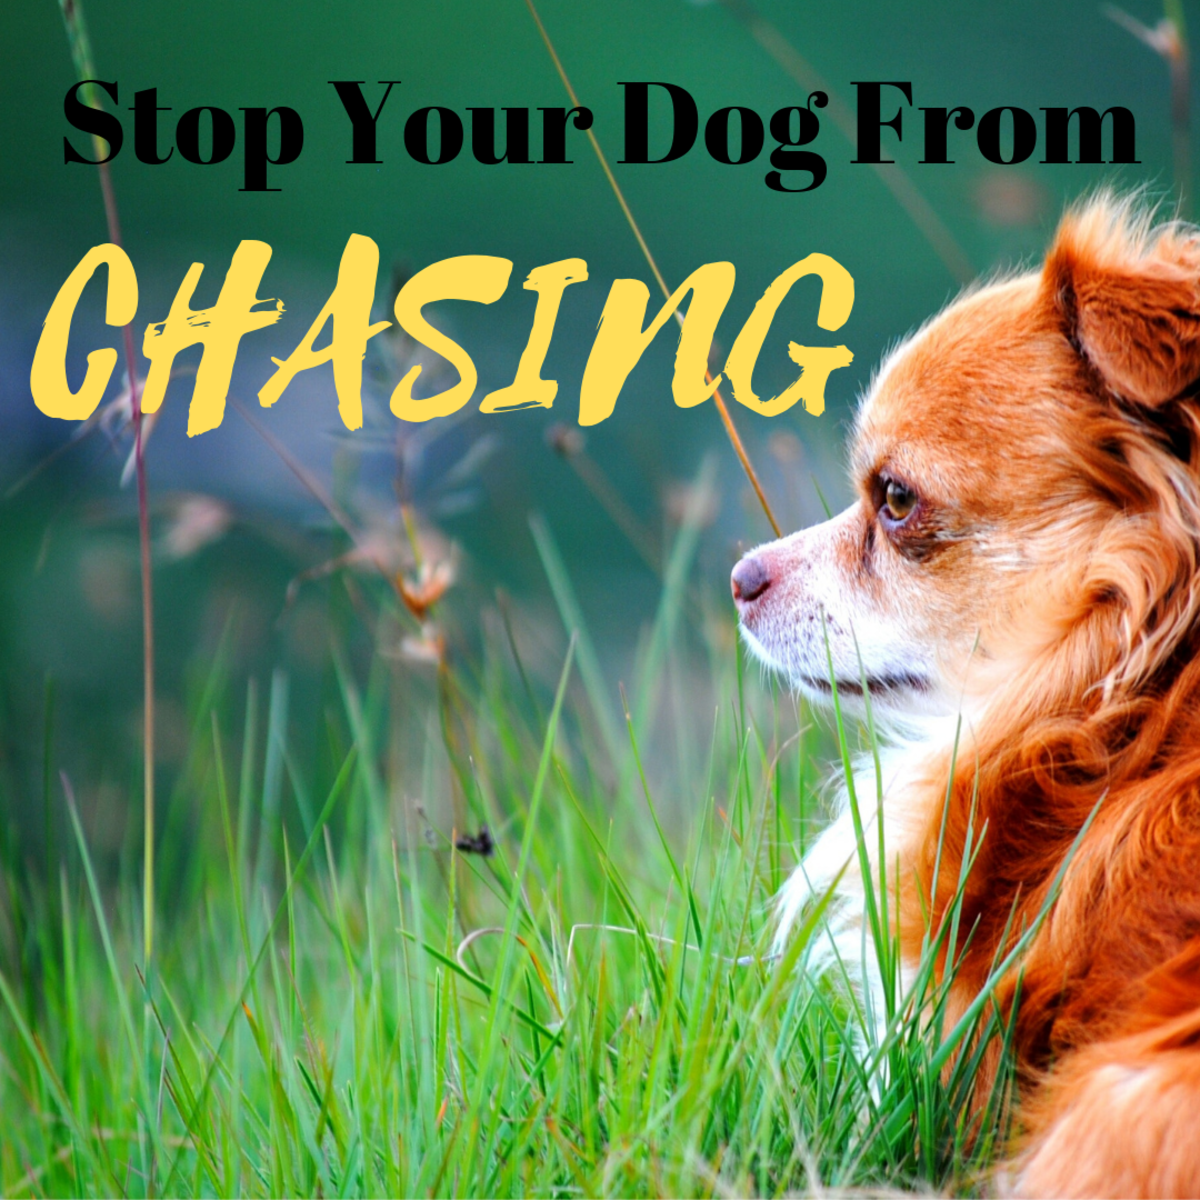 How to Stop Your Dog From Chasing or Attacking Other Animals